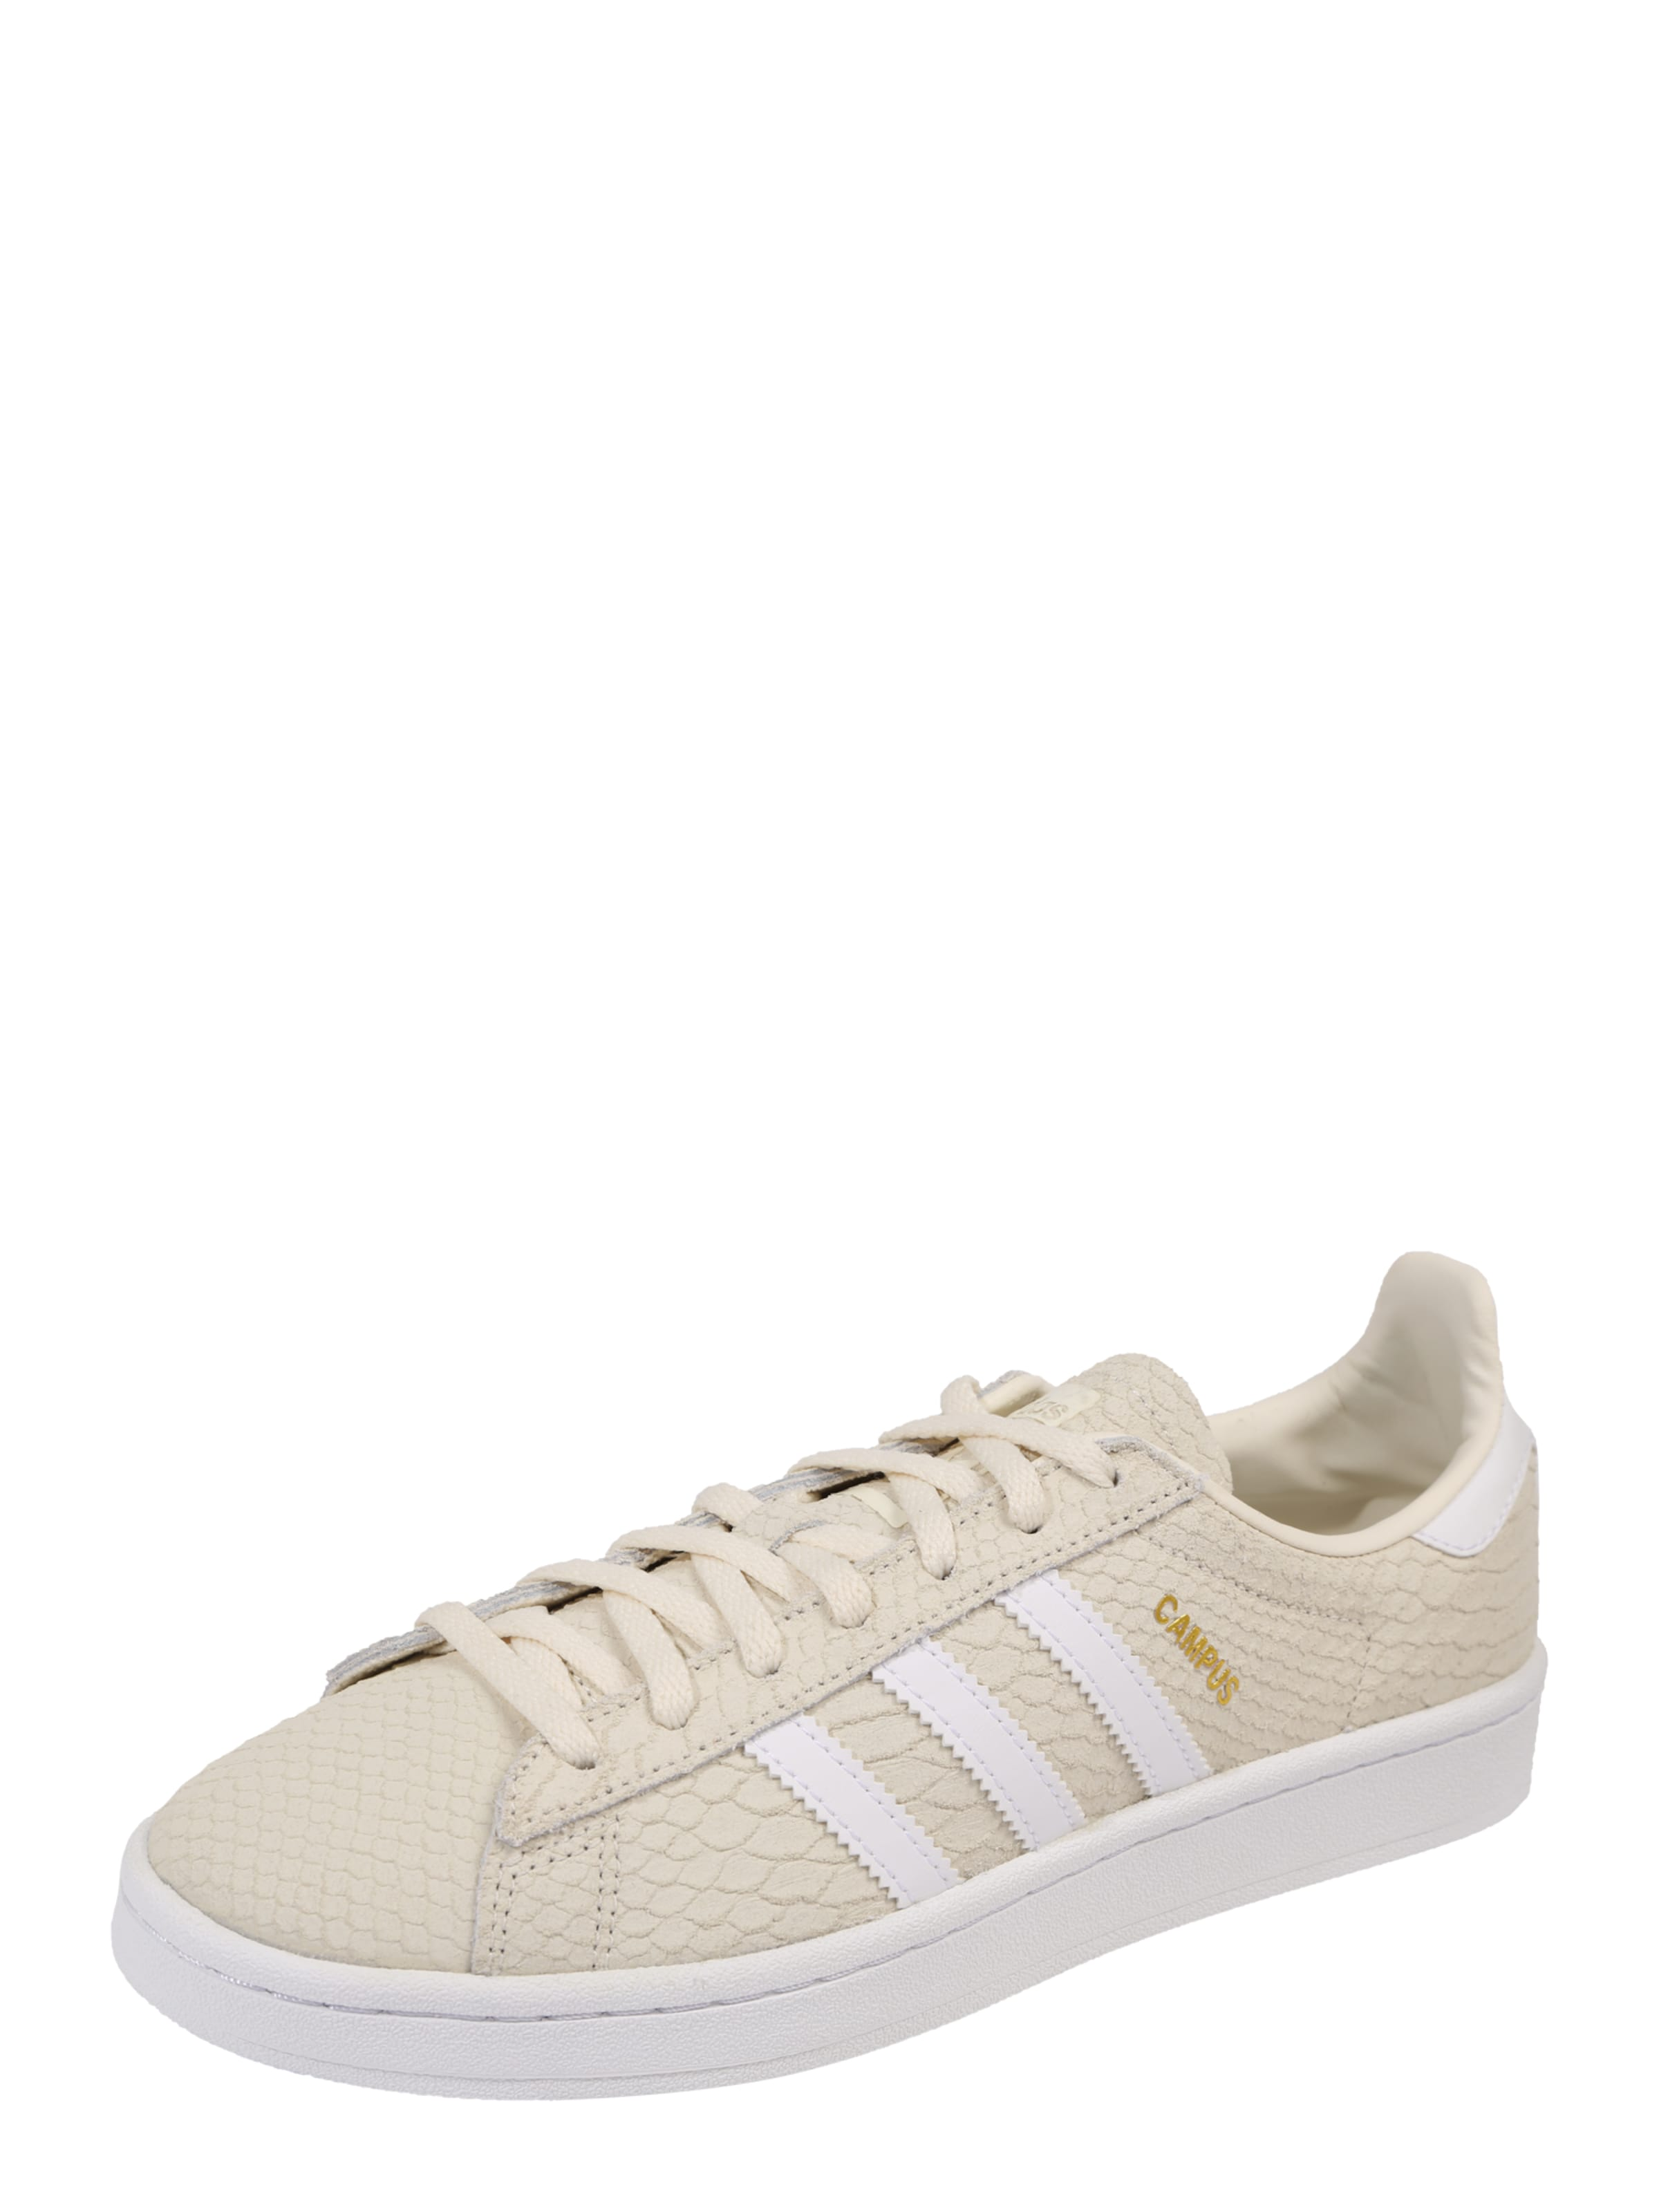 ADIDAS ORIGINALS Sneaker  CAMPUS